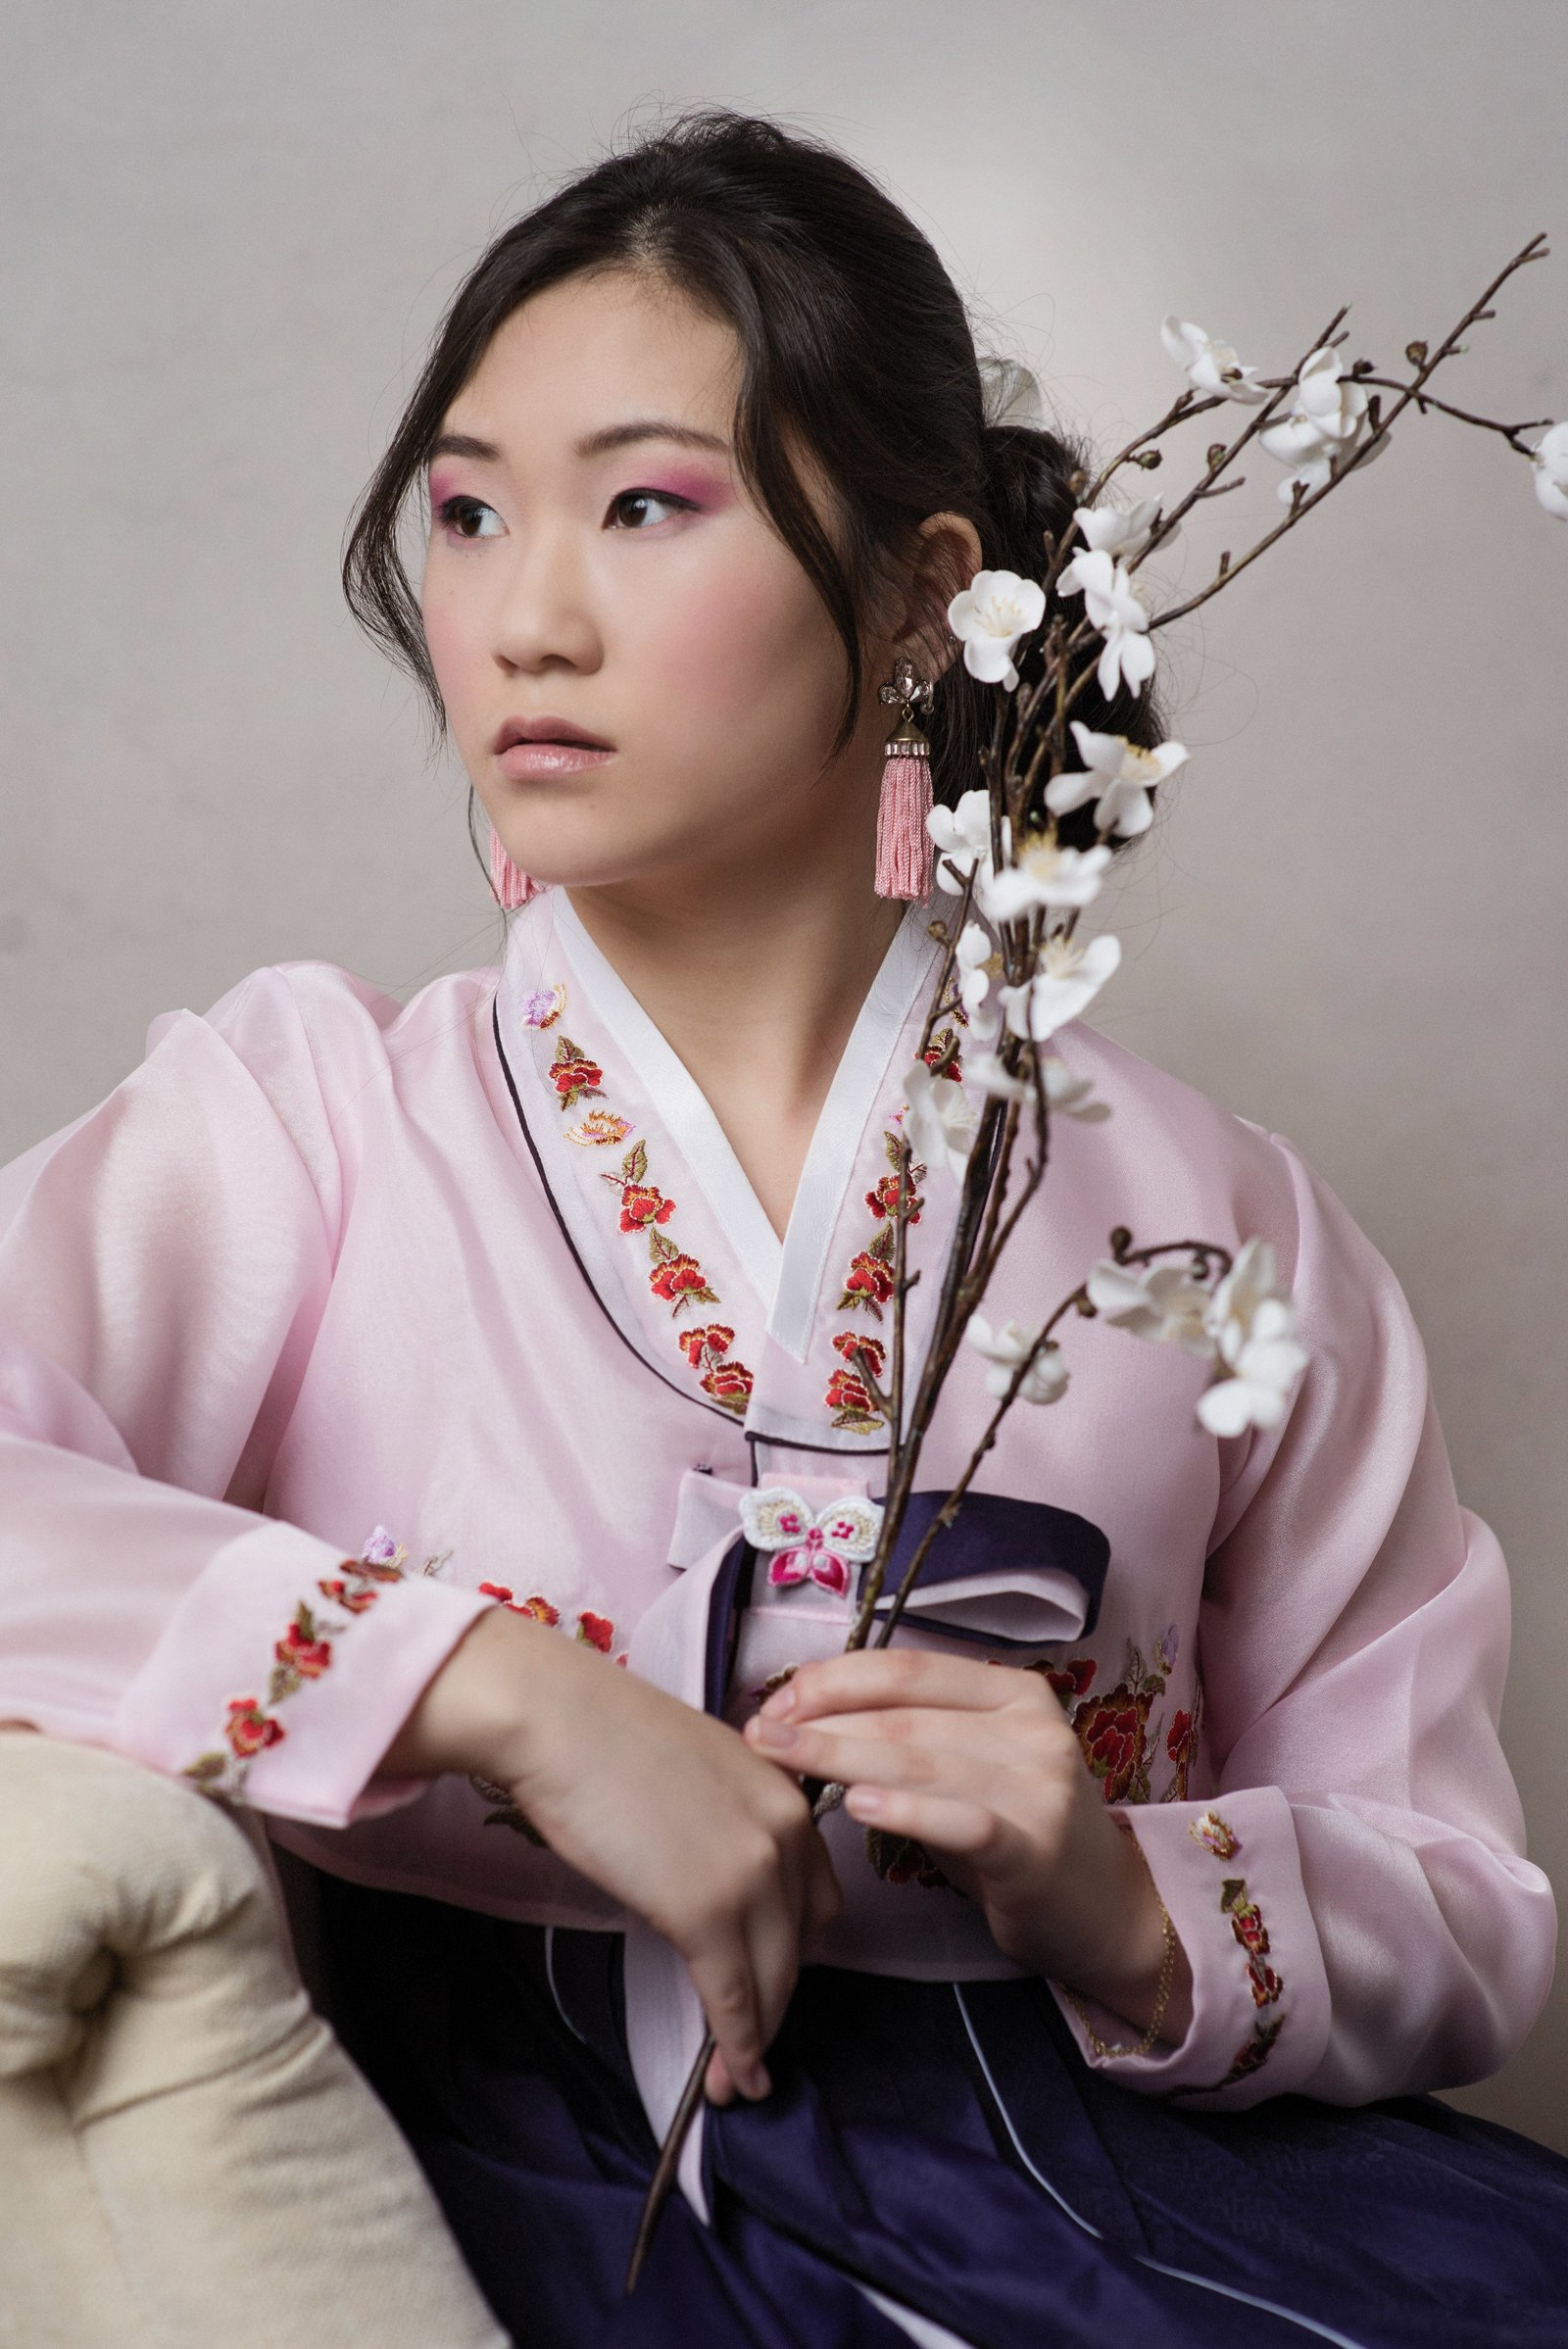 Asian girl in traditional dress senior picture Minneapolis